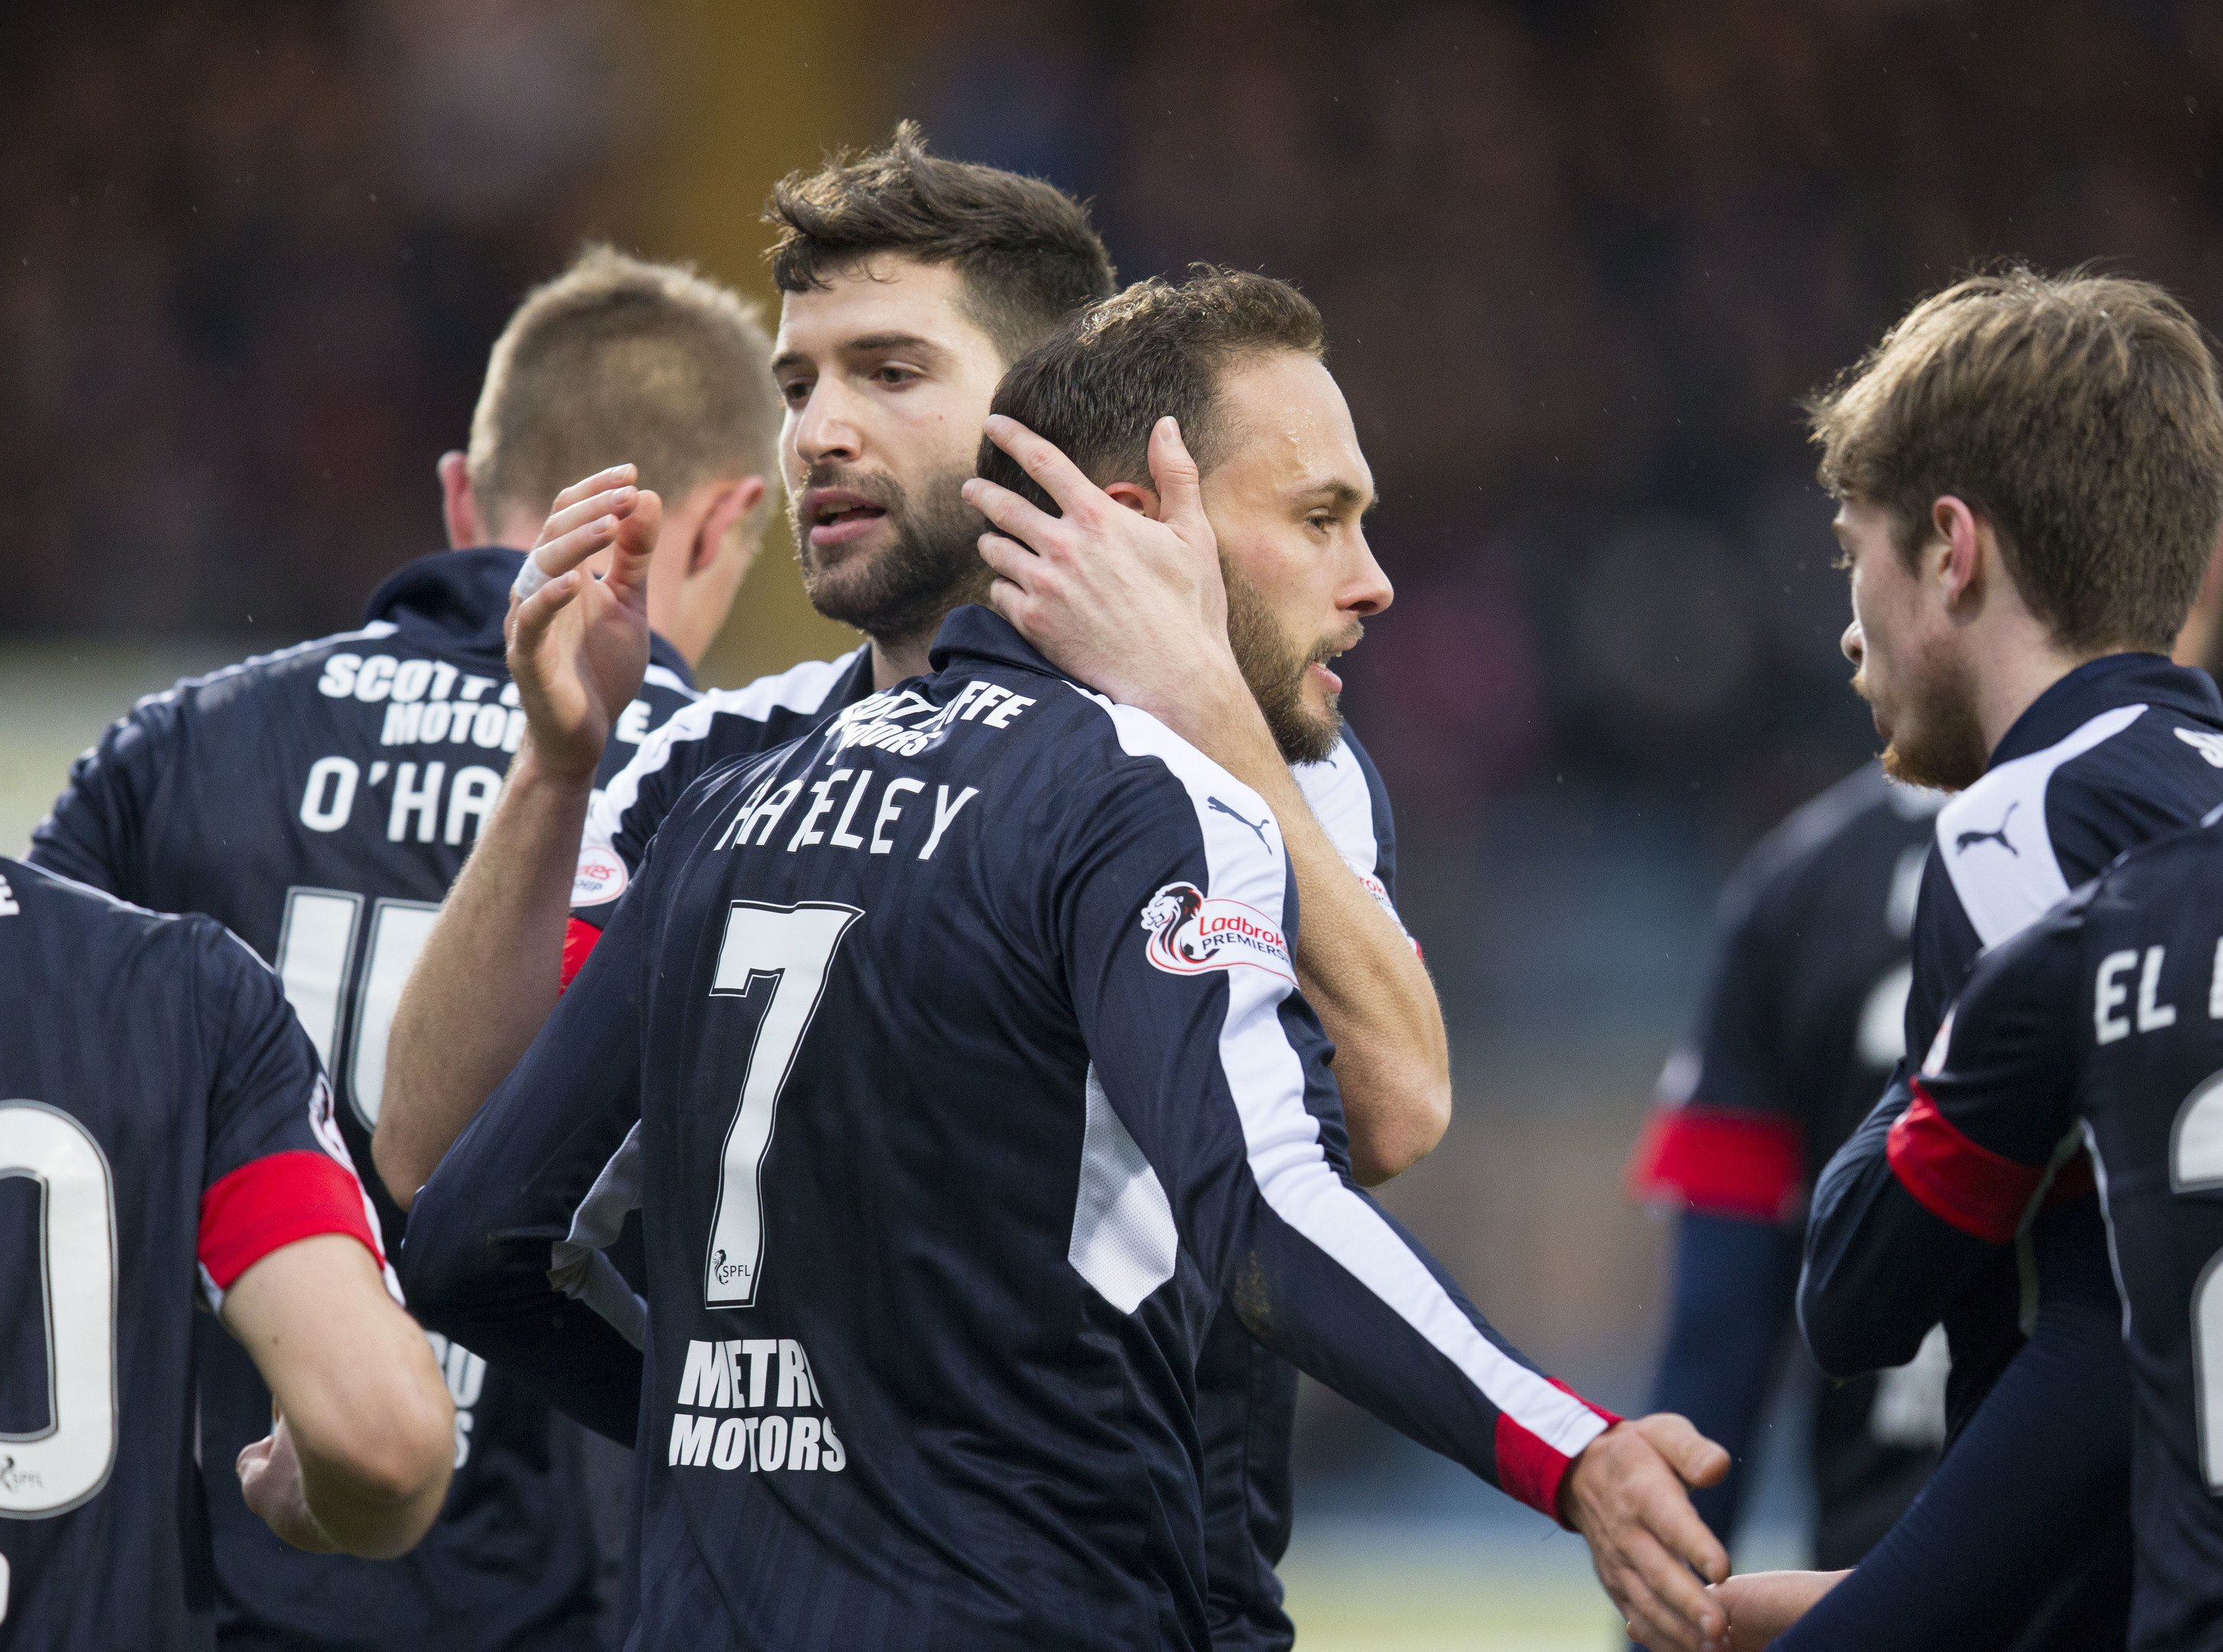 The Dundee players were celebrating a three-goal win in their last league game.